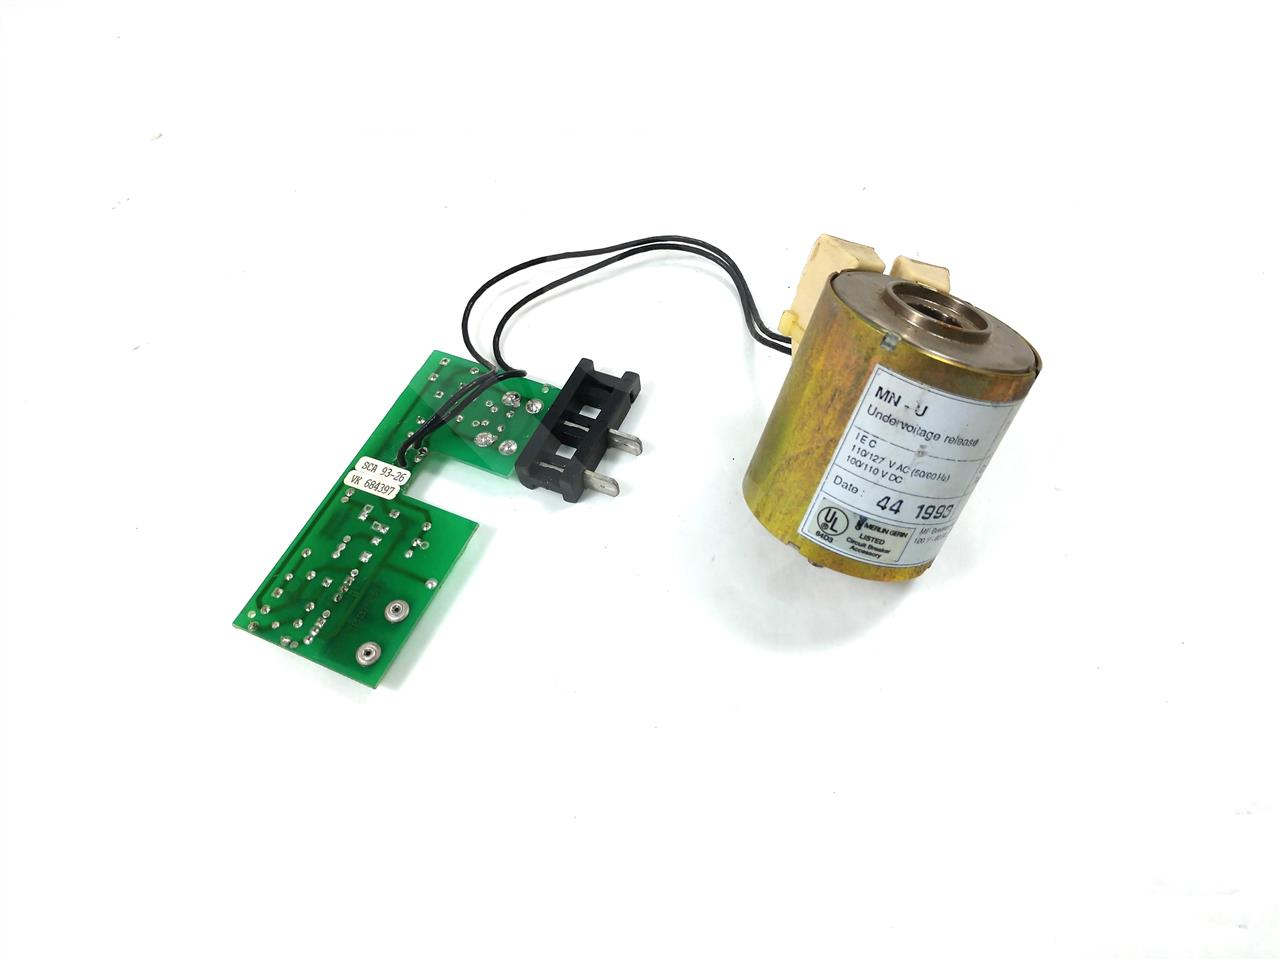 Square D SQD 125VAC/DC UNDER VOLTAGE (UV) DEVICE ASSEMBLY INSTANTANEOUS